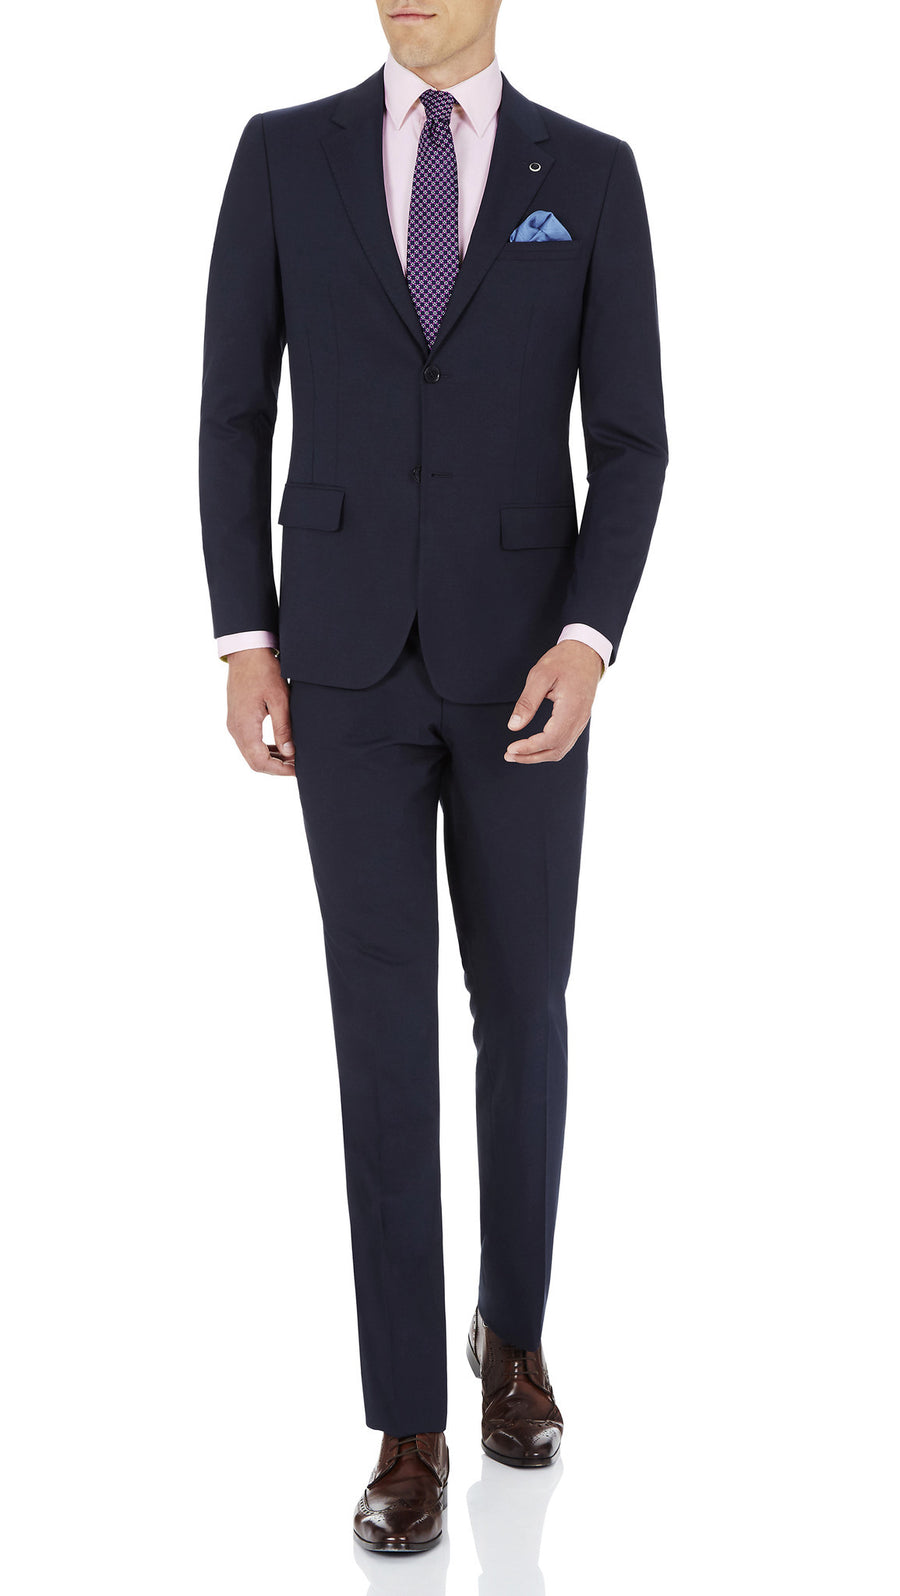 Blackjacket Skinny Fit Suit in Blue Birdseye - Ron Bennett Menswear  - 2